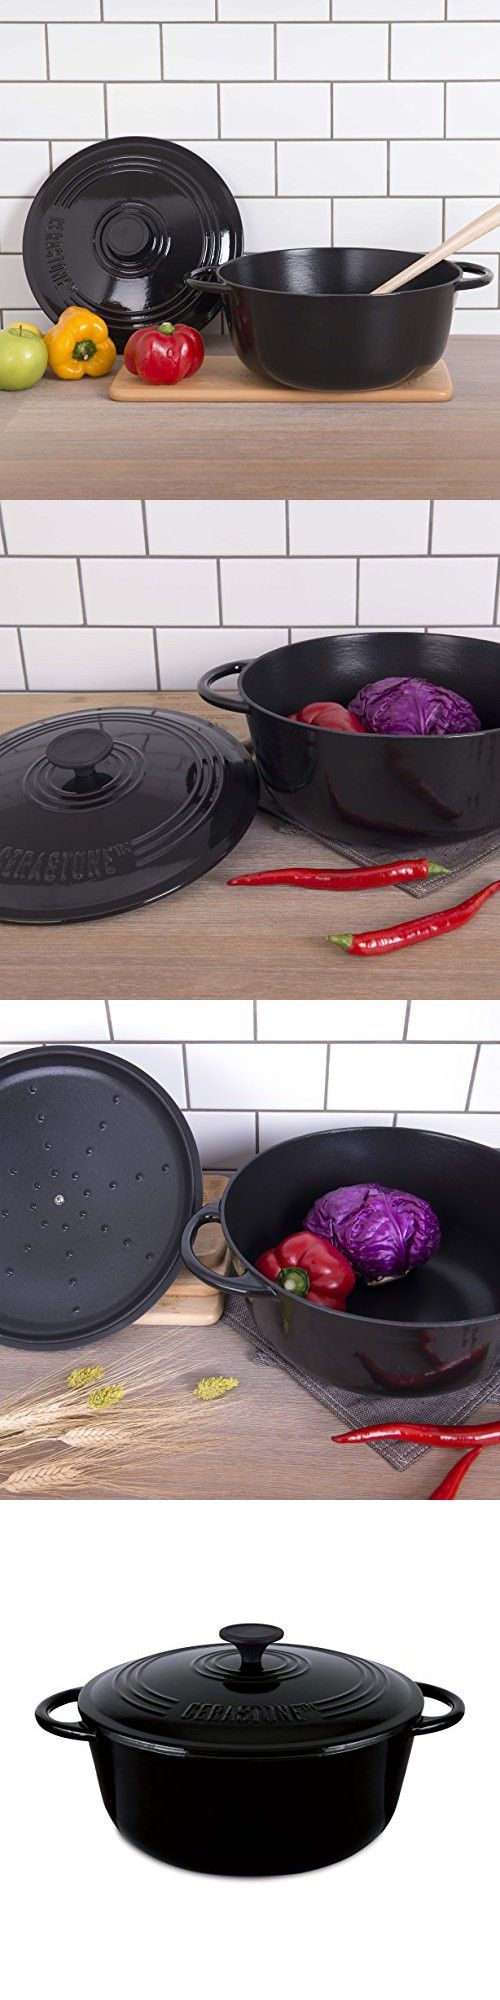 CeraStone Cast Iron CCI0116 Ceramic Coating Interior And Color Enamel Coating Exterior Dutch Oven Cookware, Black